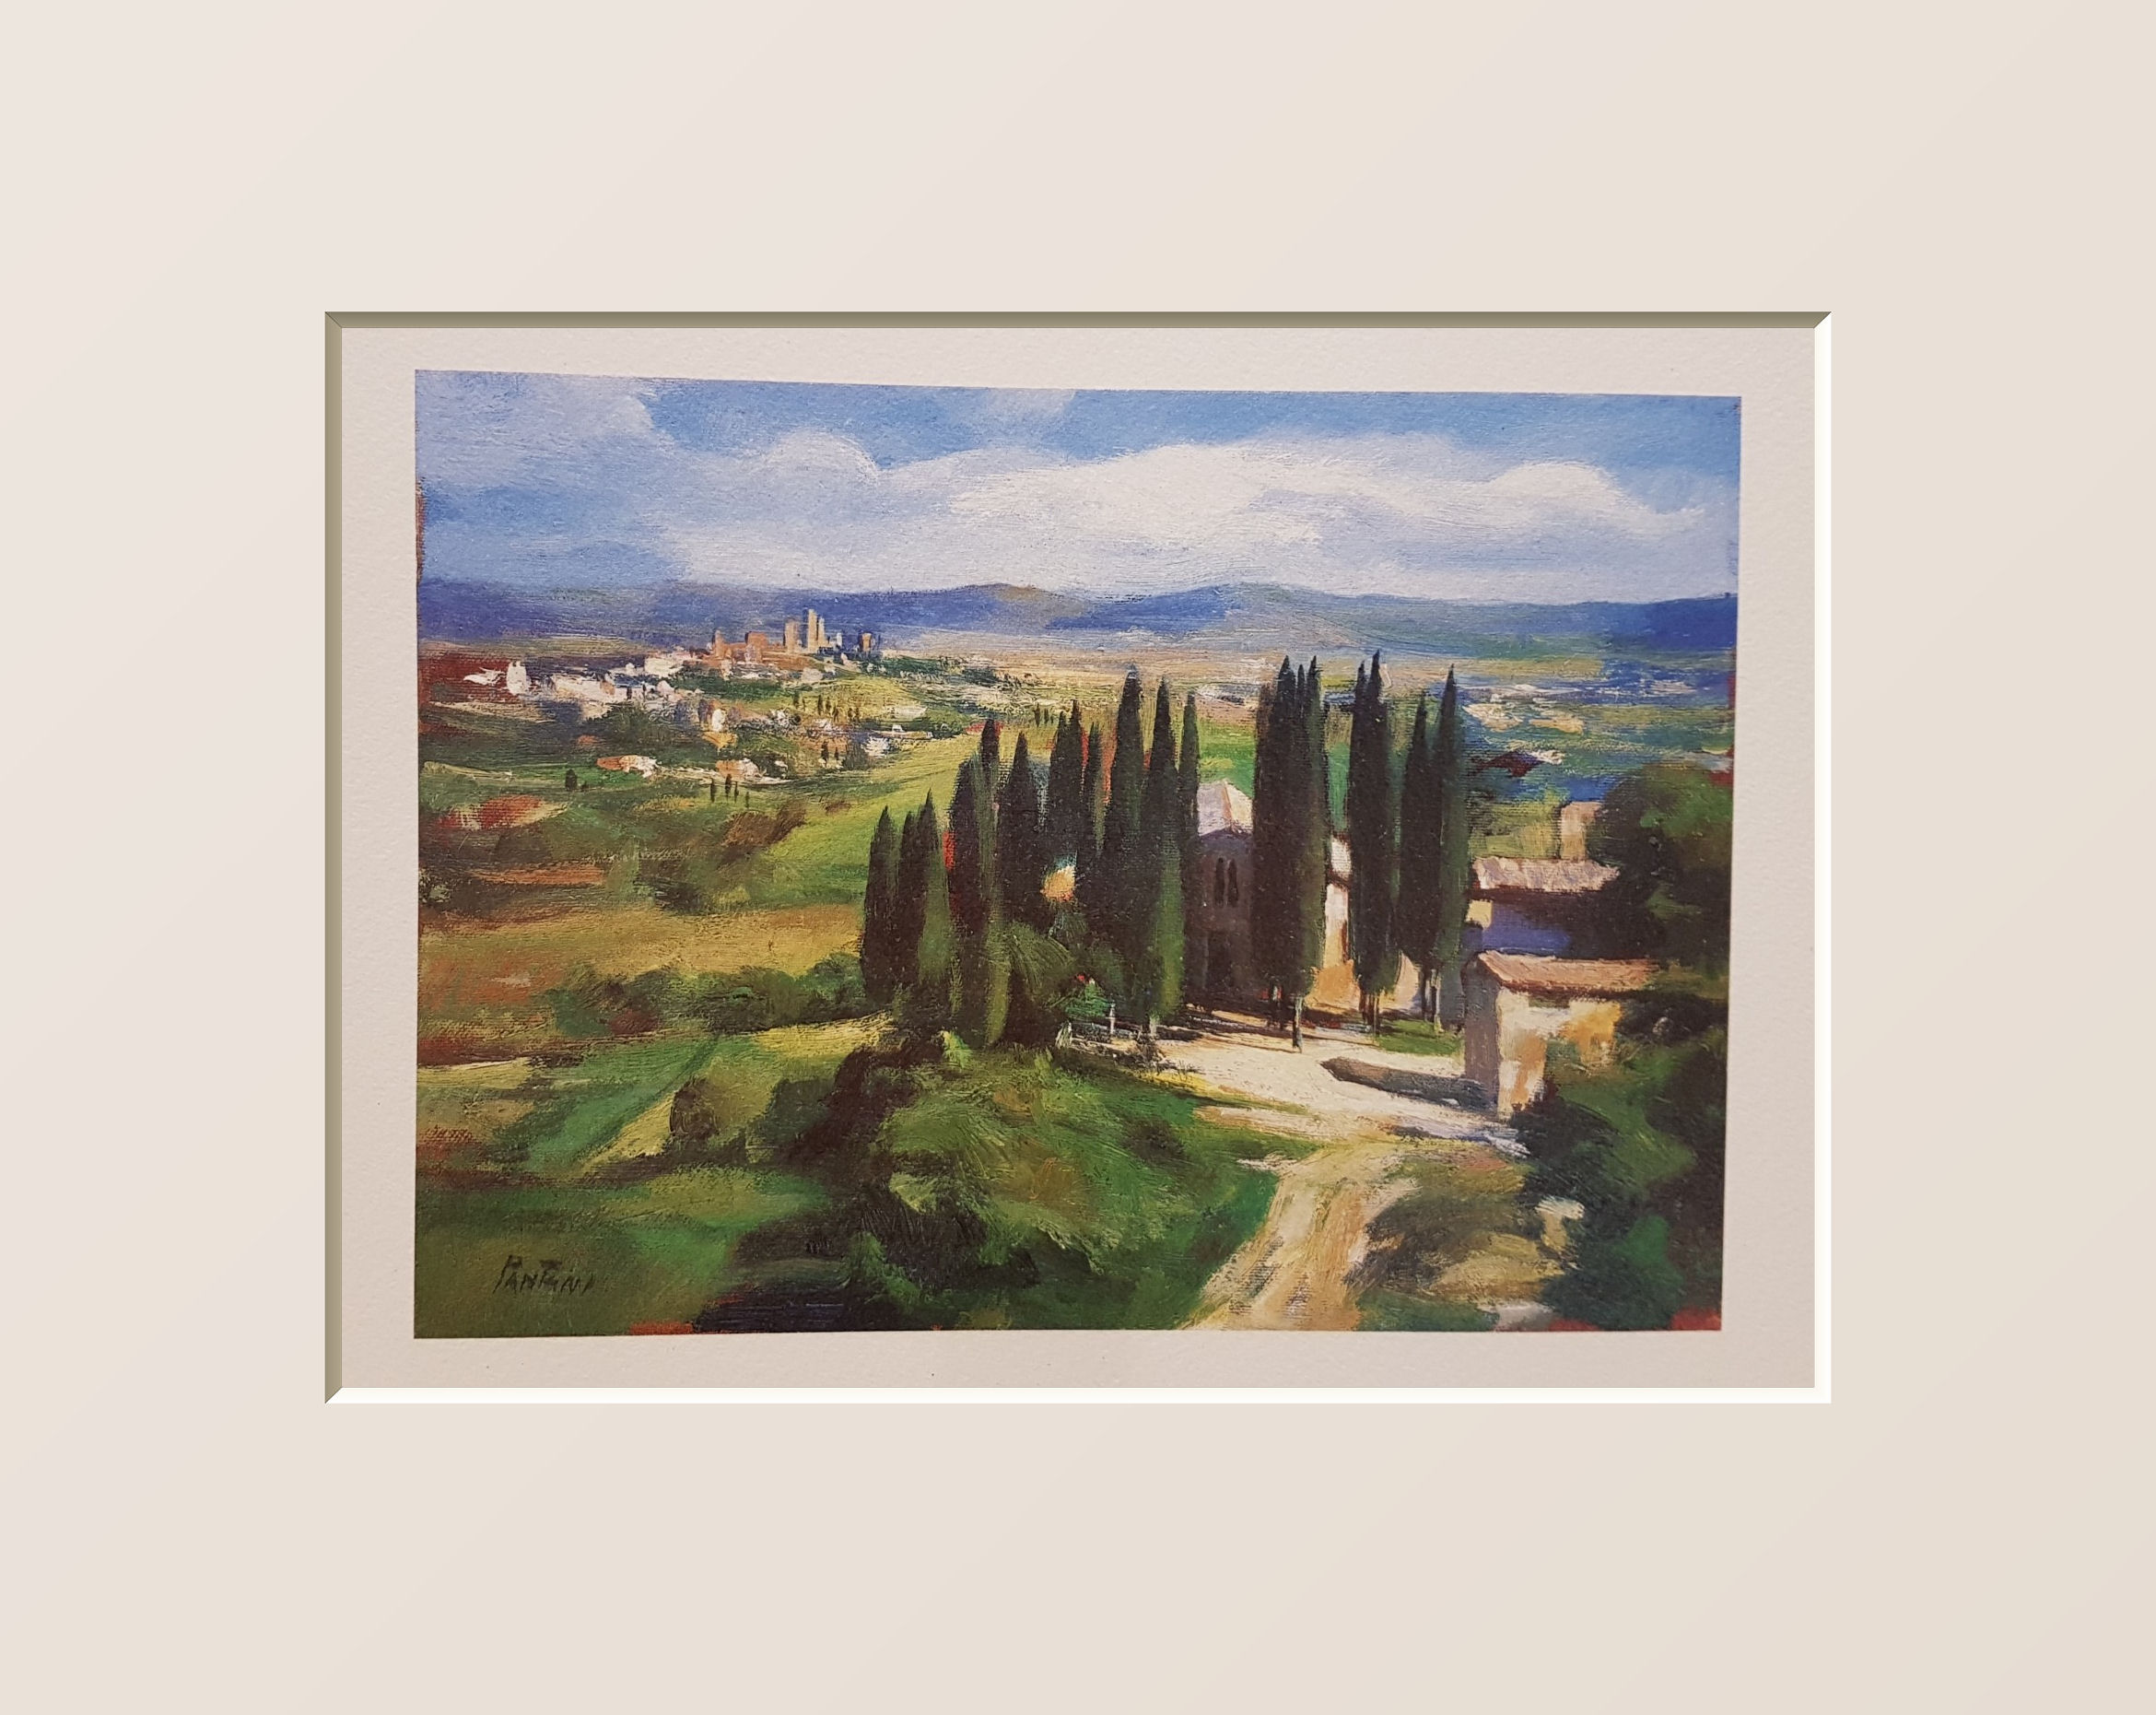 Cipressi in toscana, Cypresses in tuscany